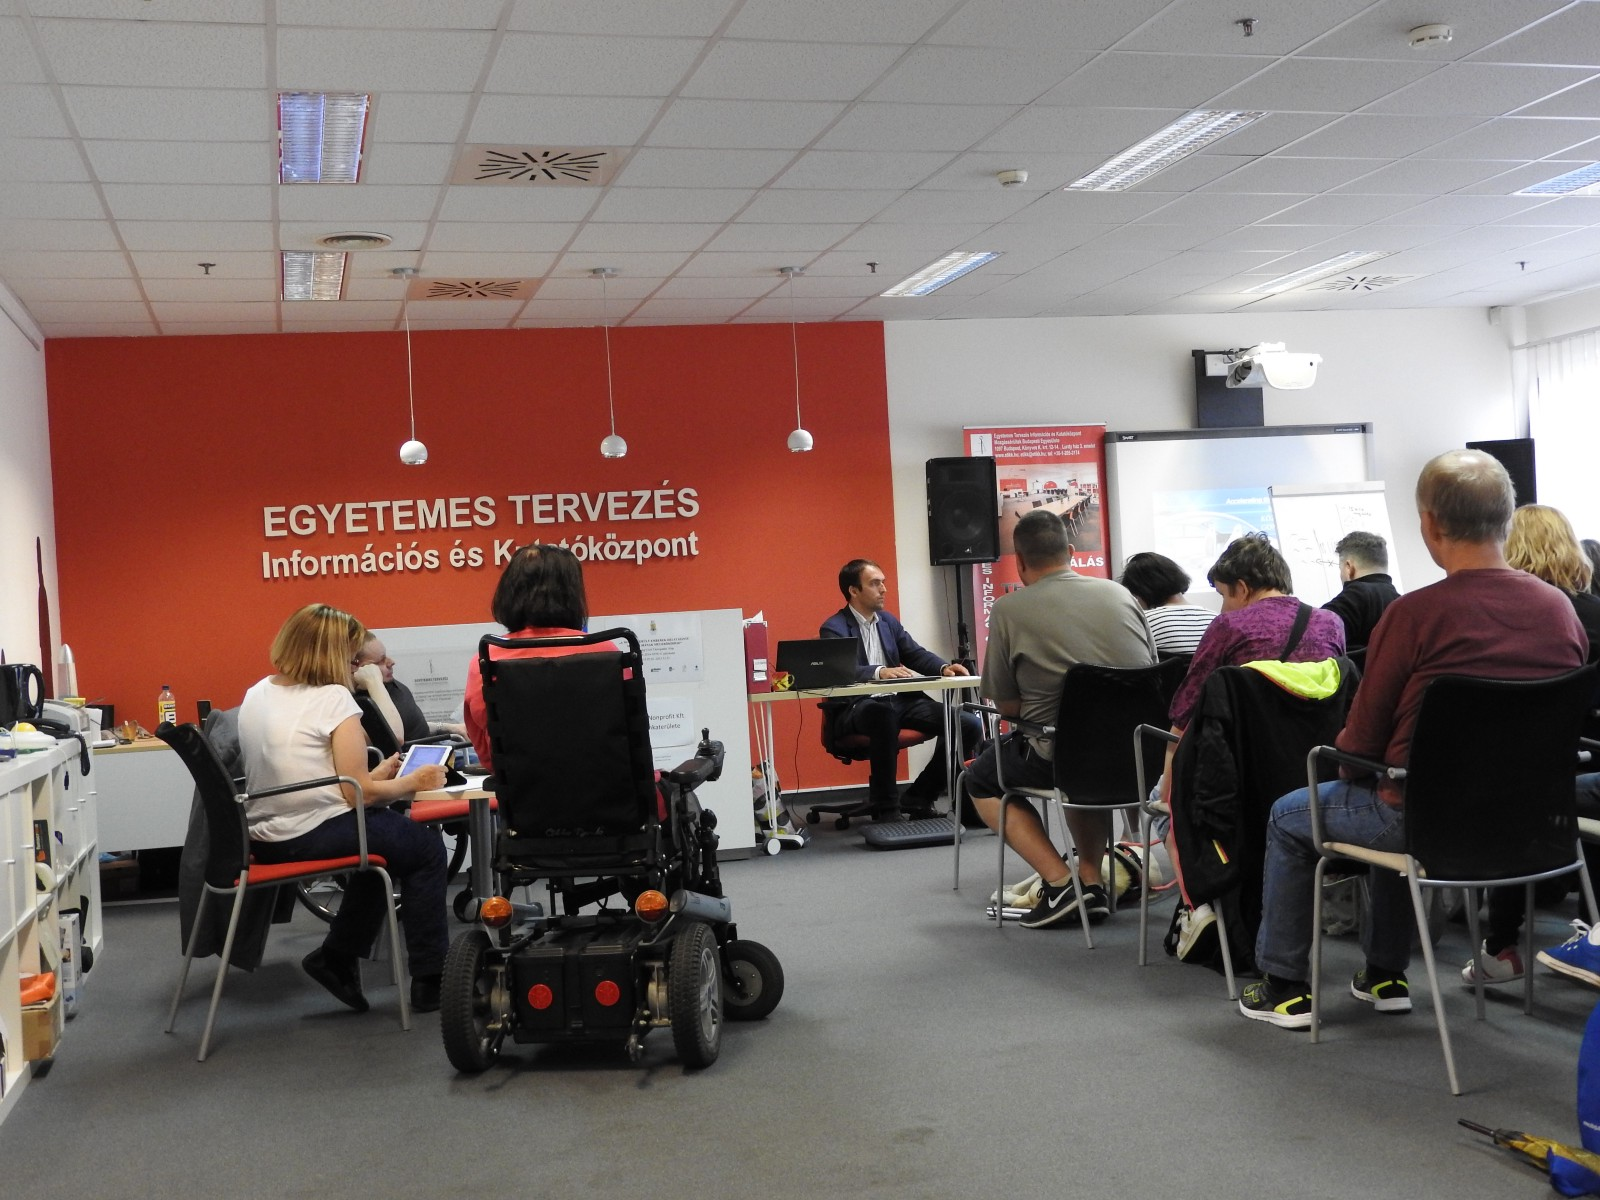 The cost of adaptation of buildings and facilities for people with disabilities